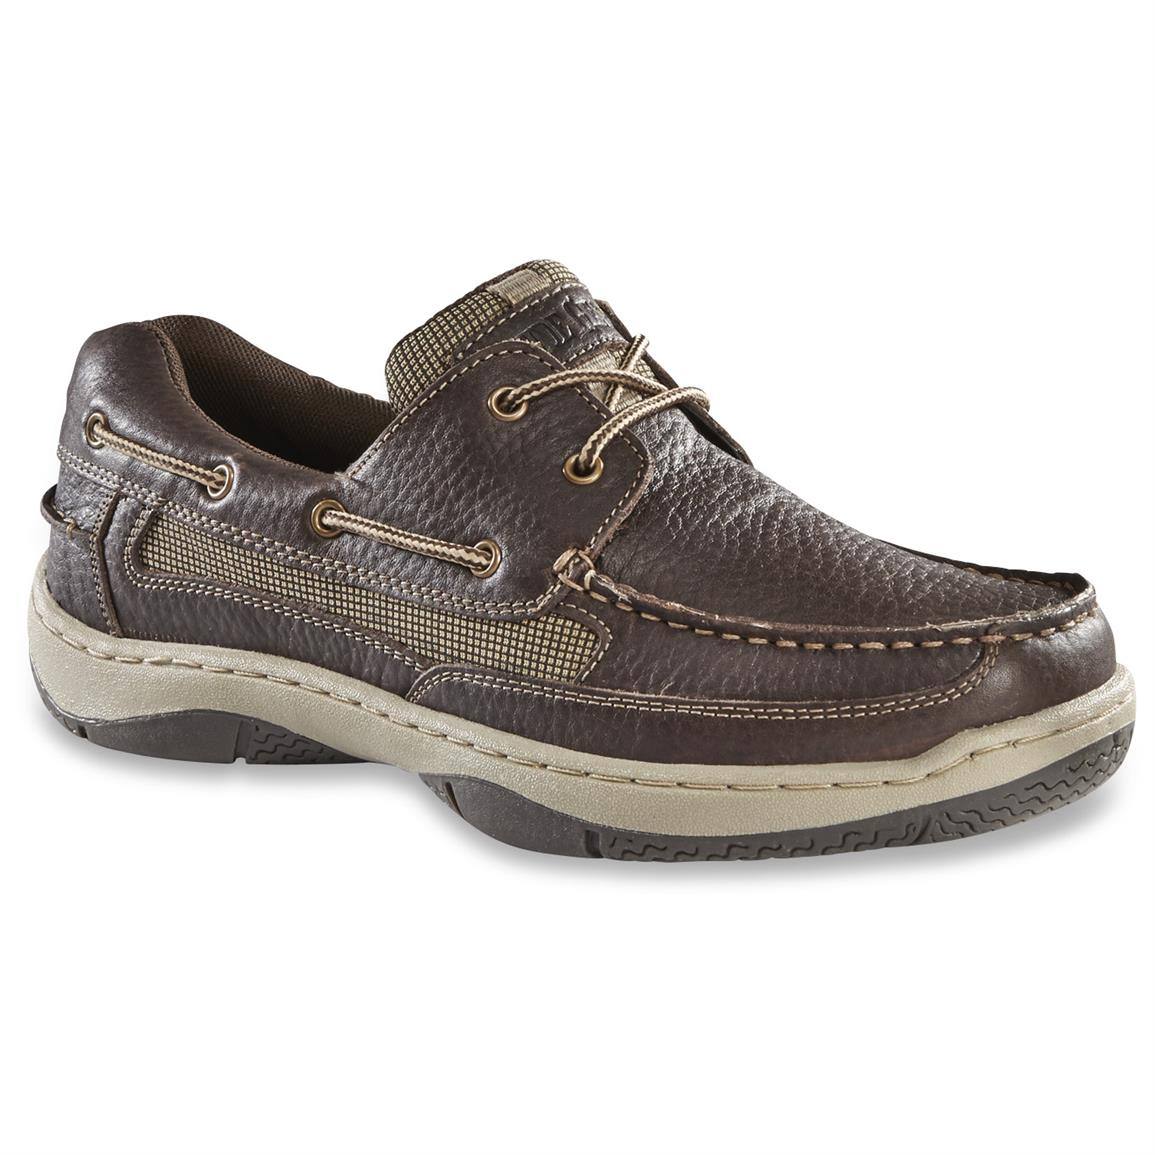 Guide Gear Men's Lace Up Boat Shoes, Dark Brown